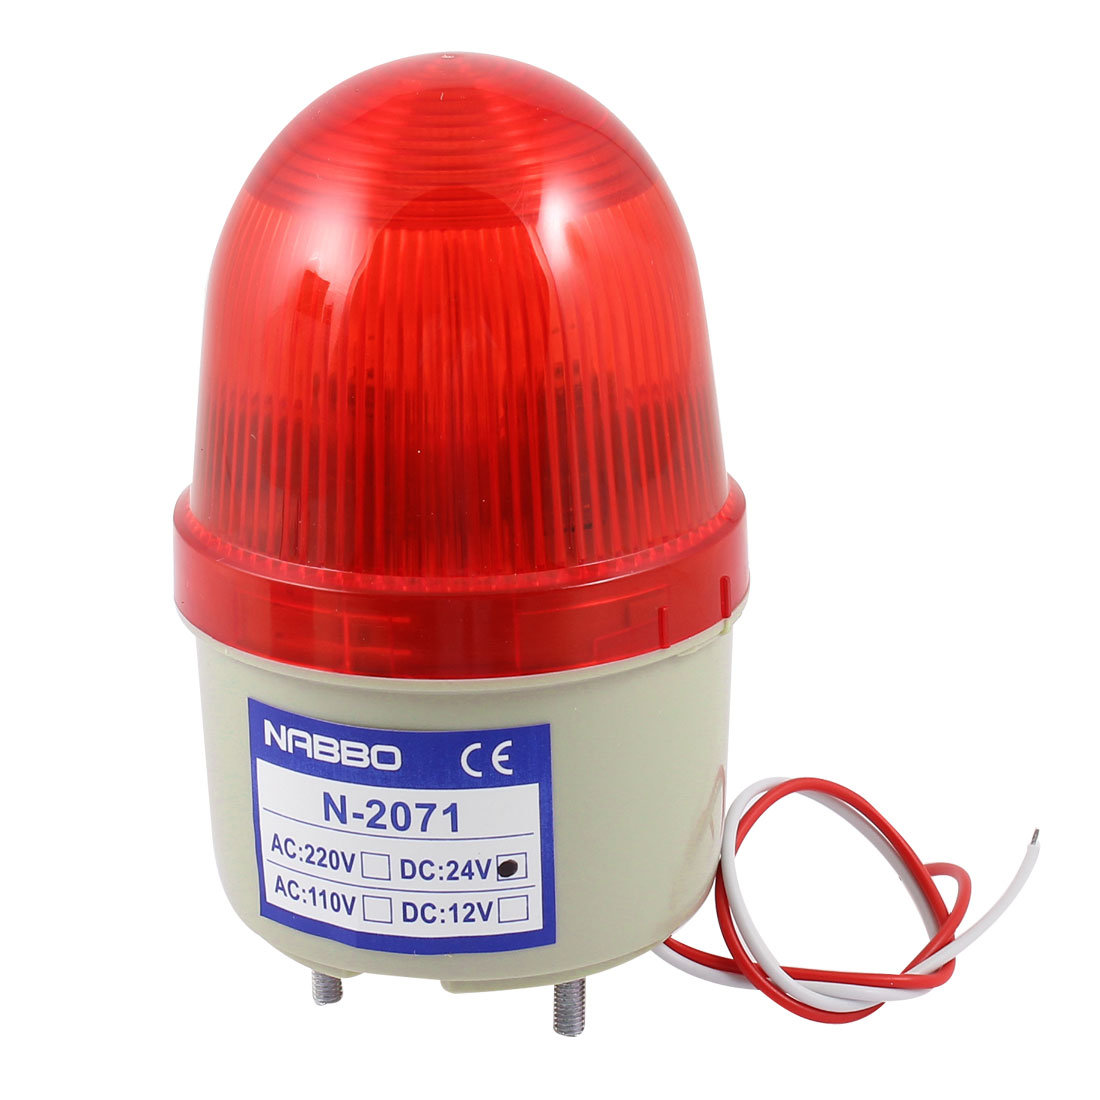 DC 24V Industrial Flash Strobe Light Emergency Warning Lamp Bulb Red N-2071